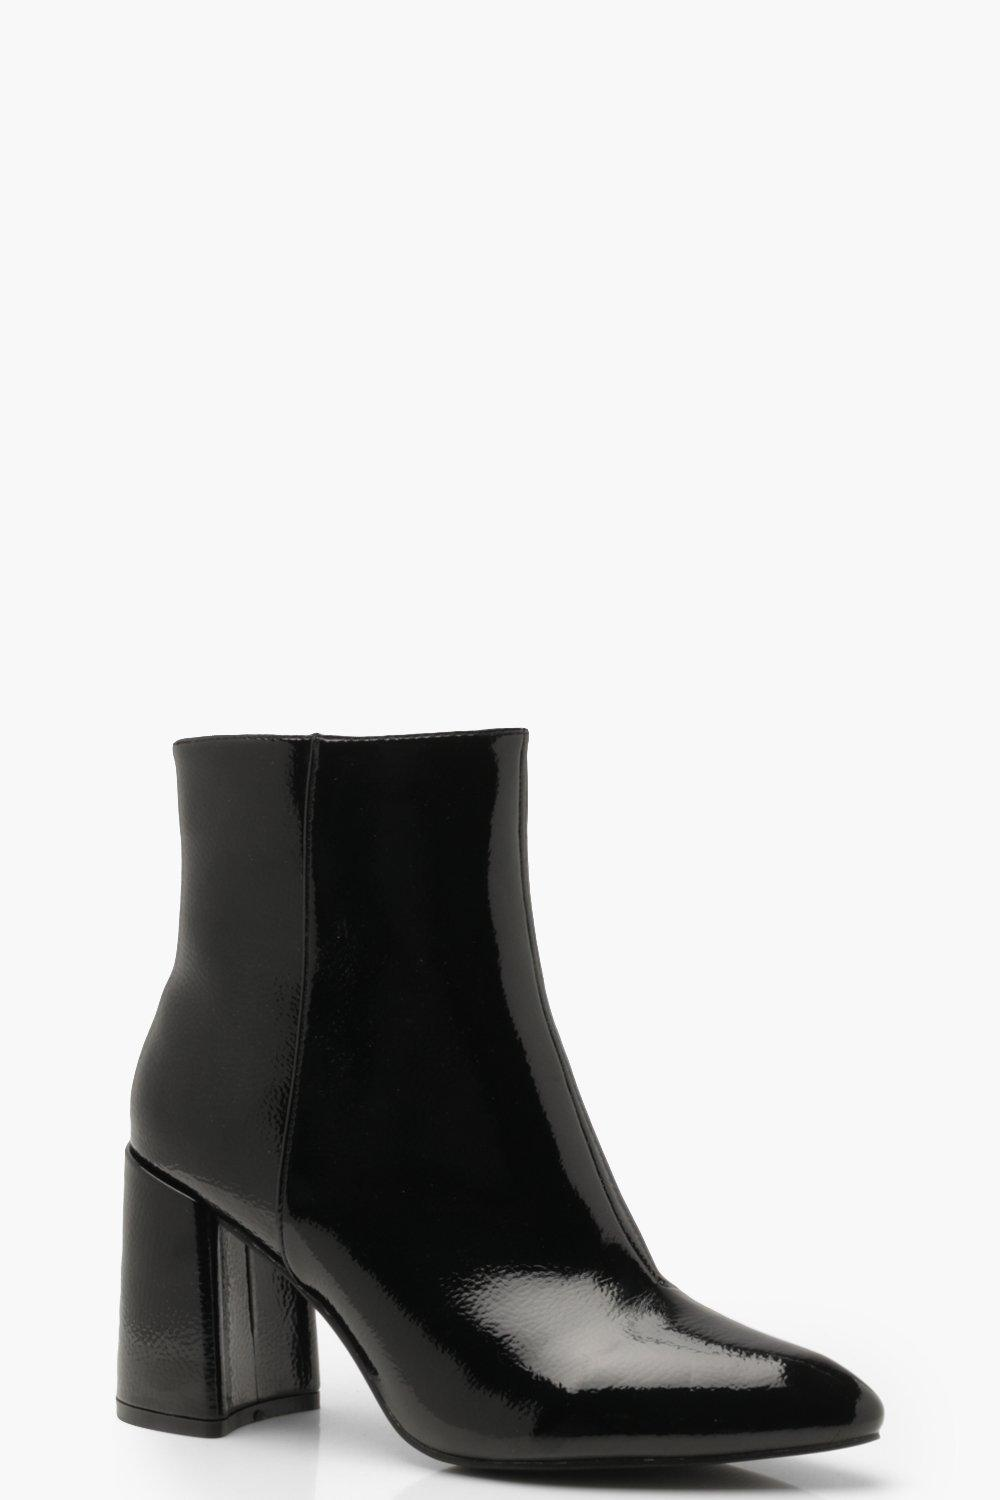 Don't Miss Out Block Heel Pointed Shoe Boots